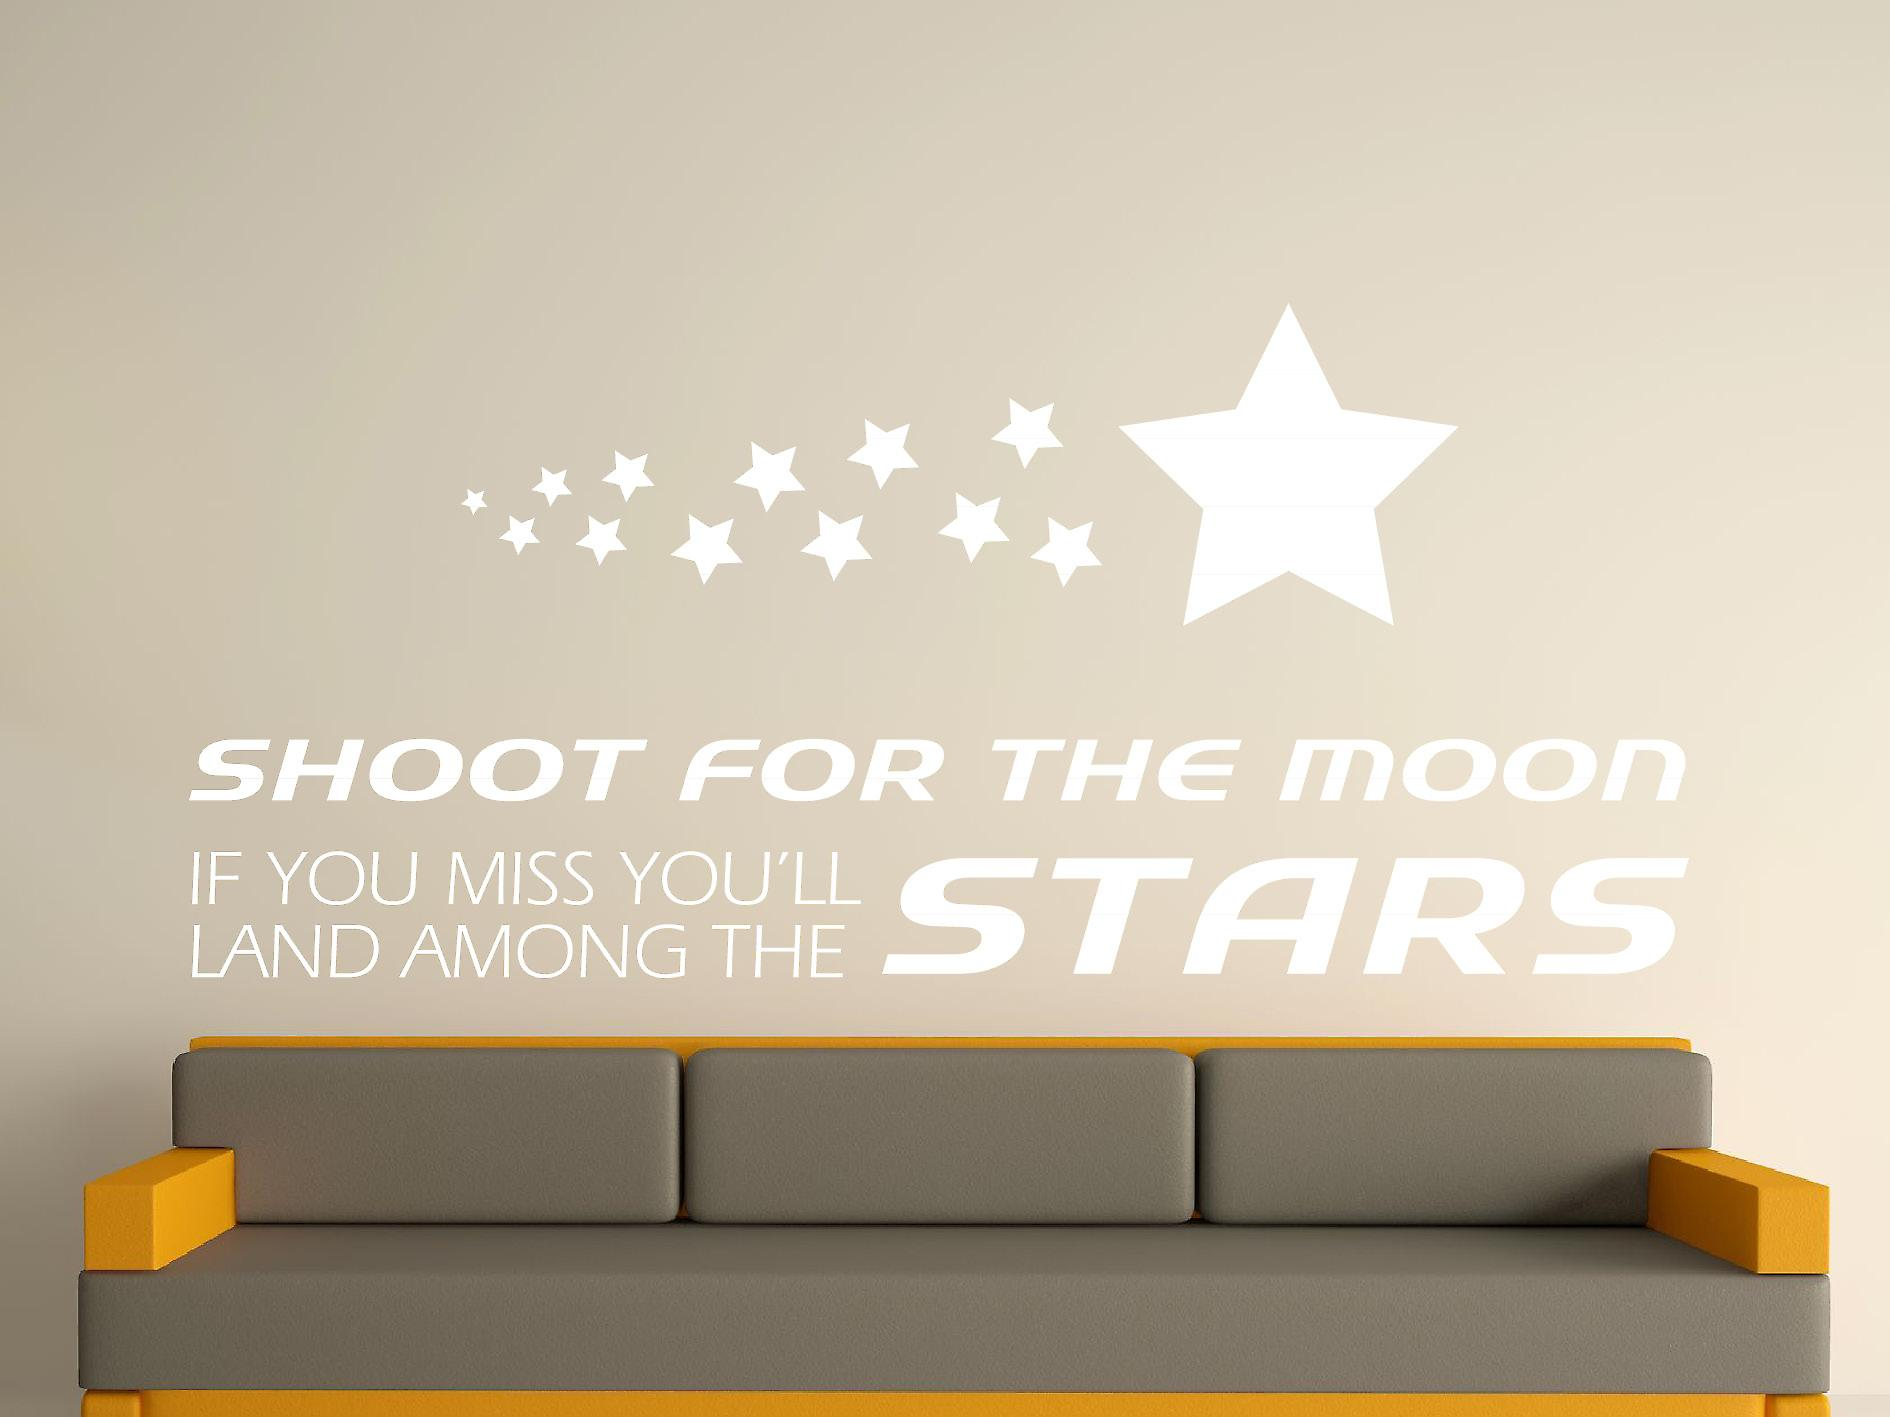 Shoot For The Moon Wall Art Sticker - White